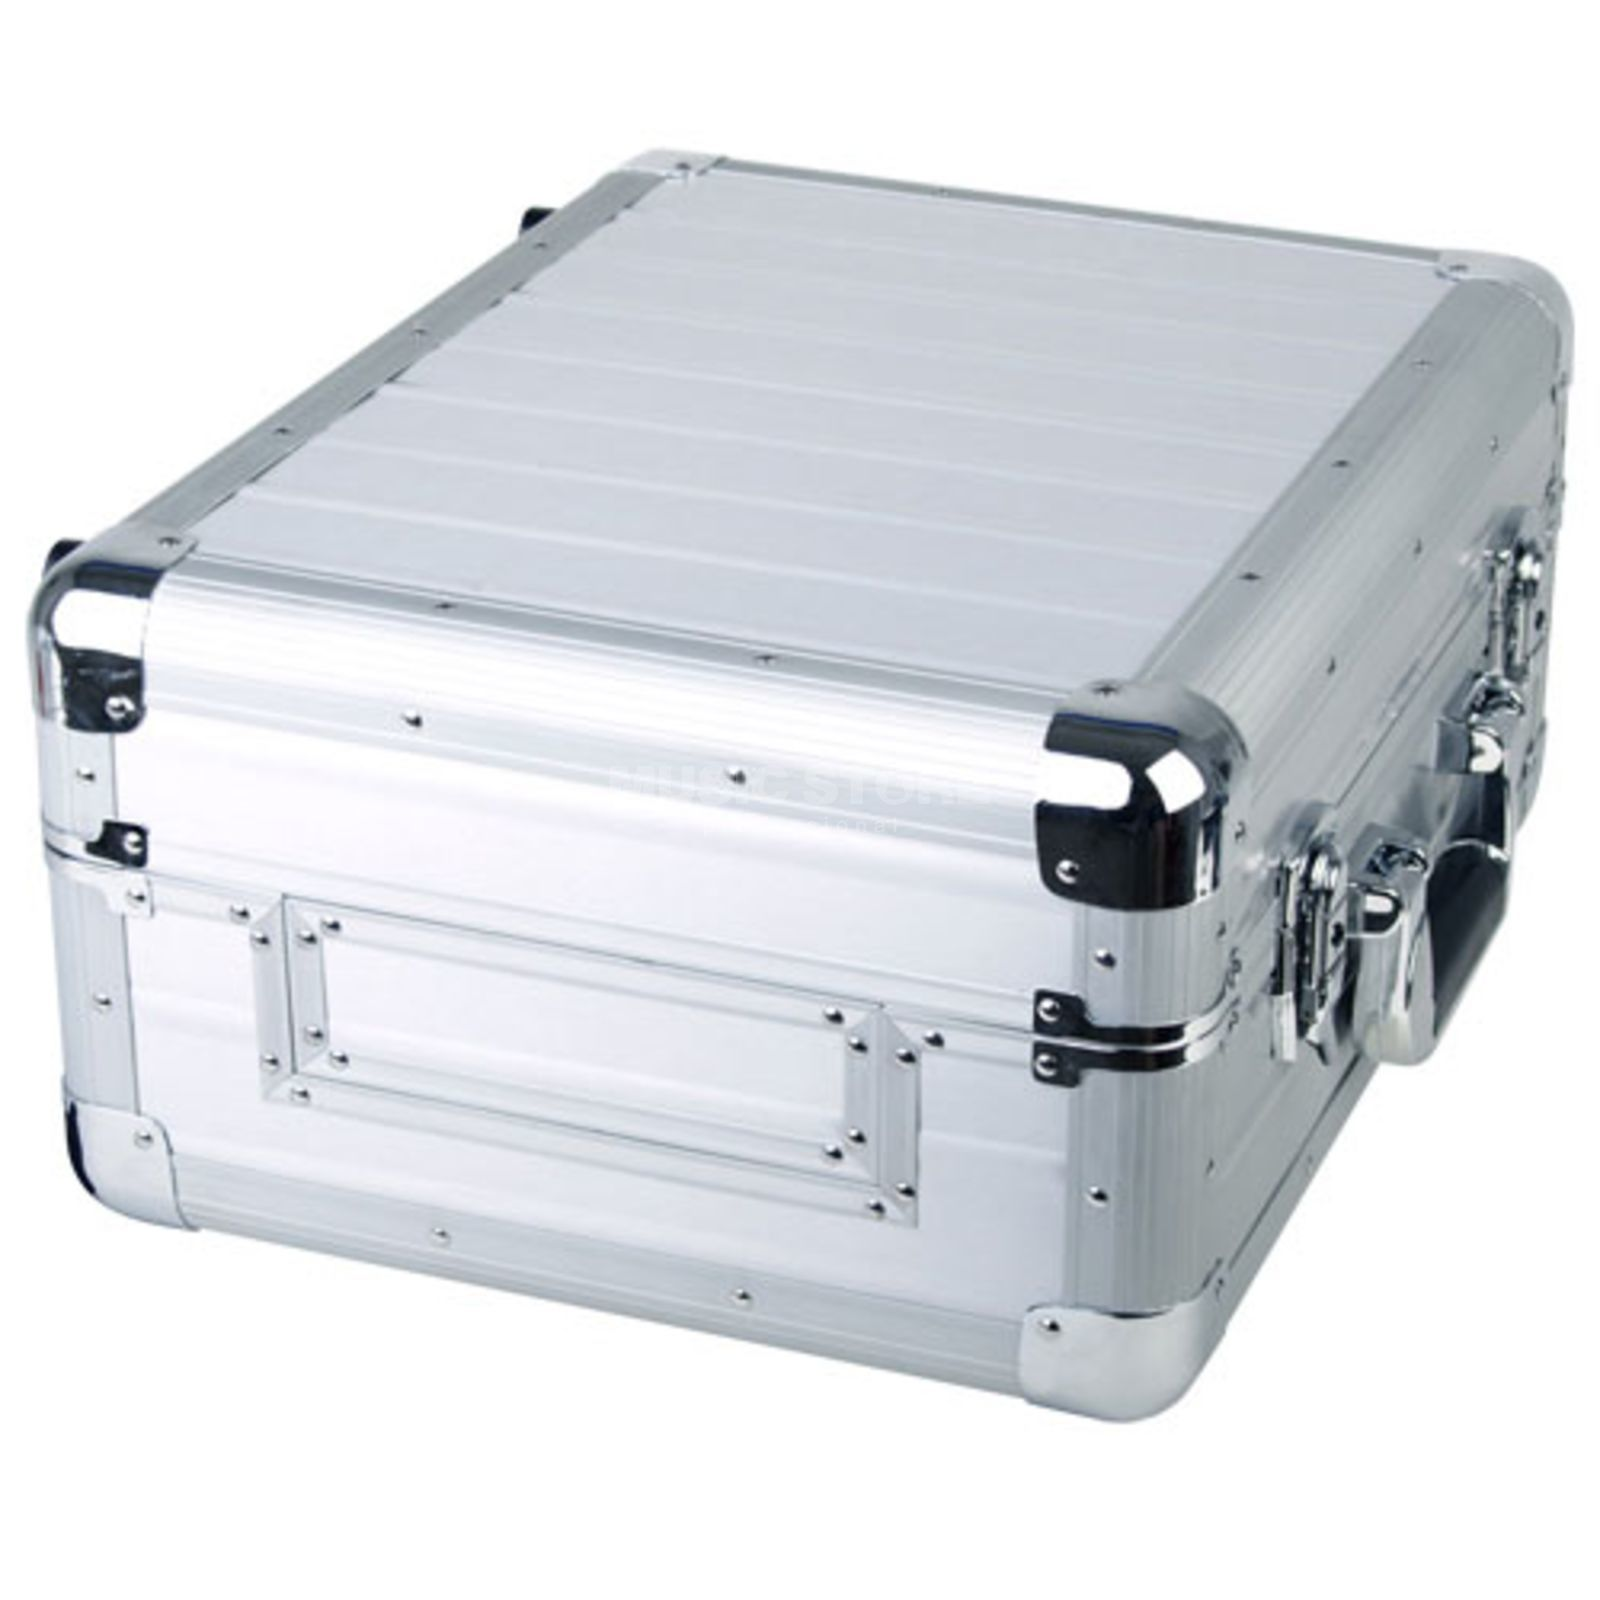 "Zomo Universal Case CDJ-10XT Silver for 10"" Player Zdjęcie produktu"